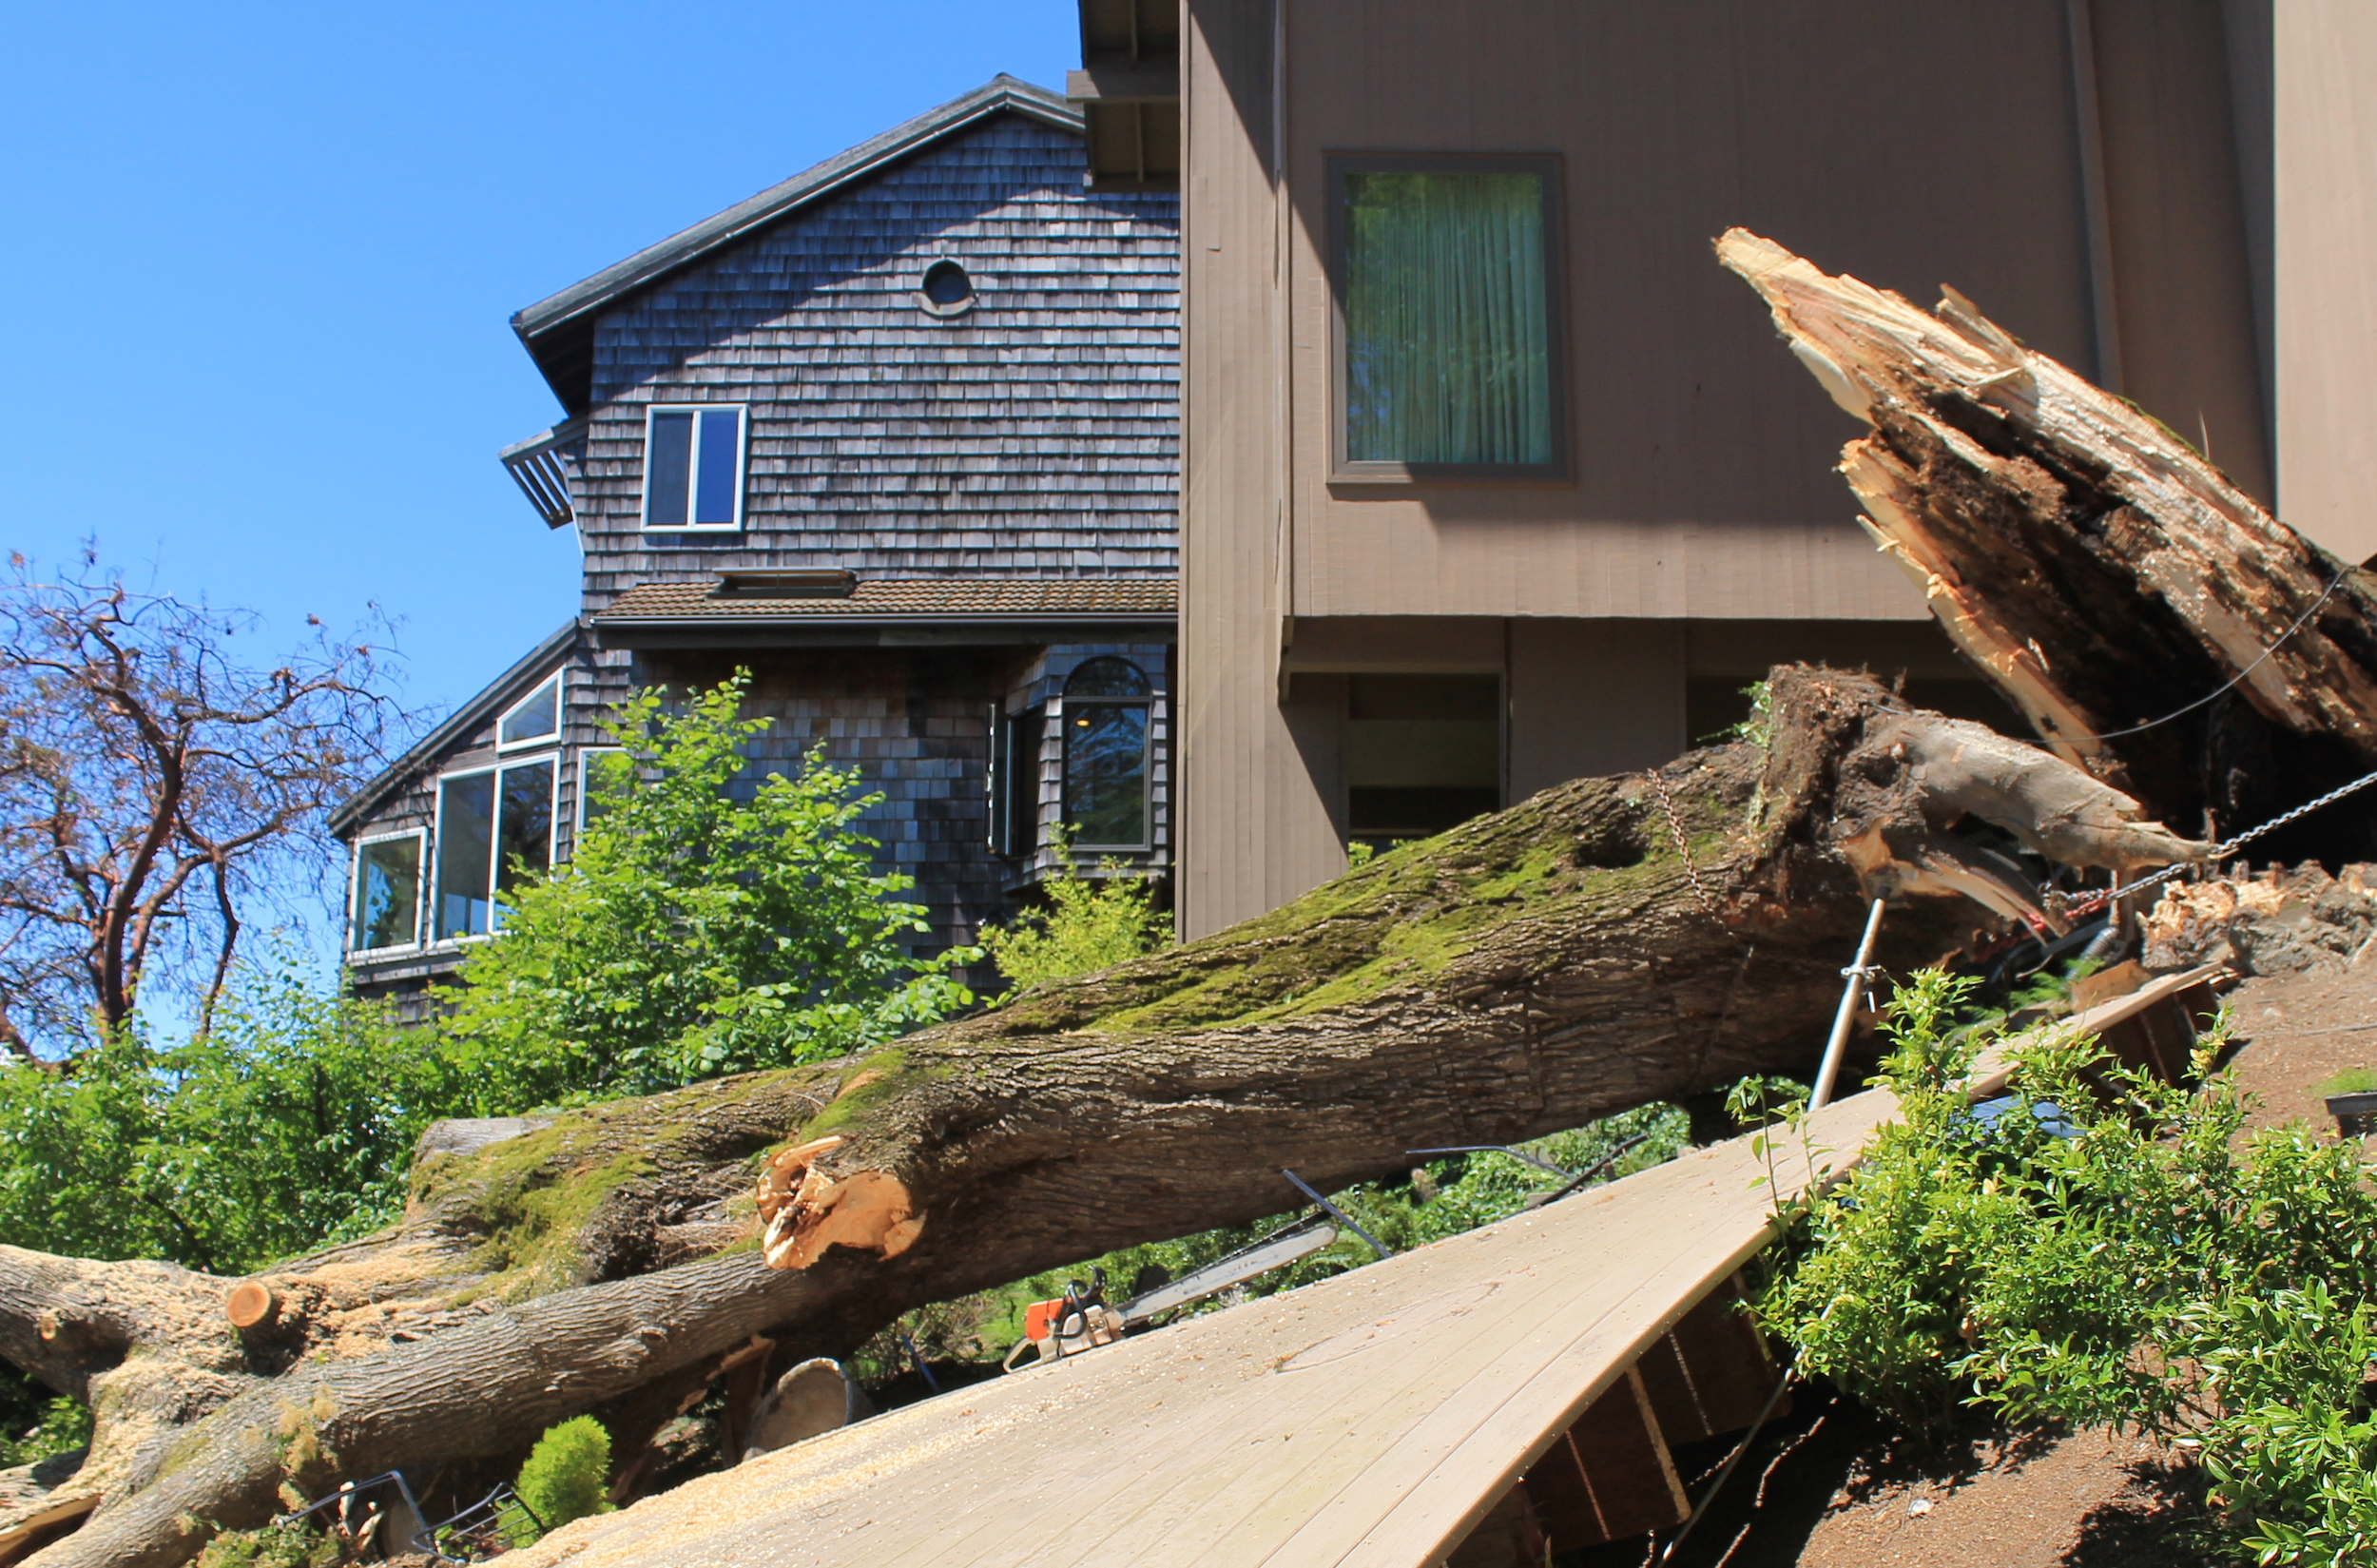 Rotted out big leaf maple that fell on its own. Note the 36 inch bar chainsaw in the center